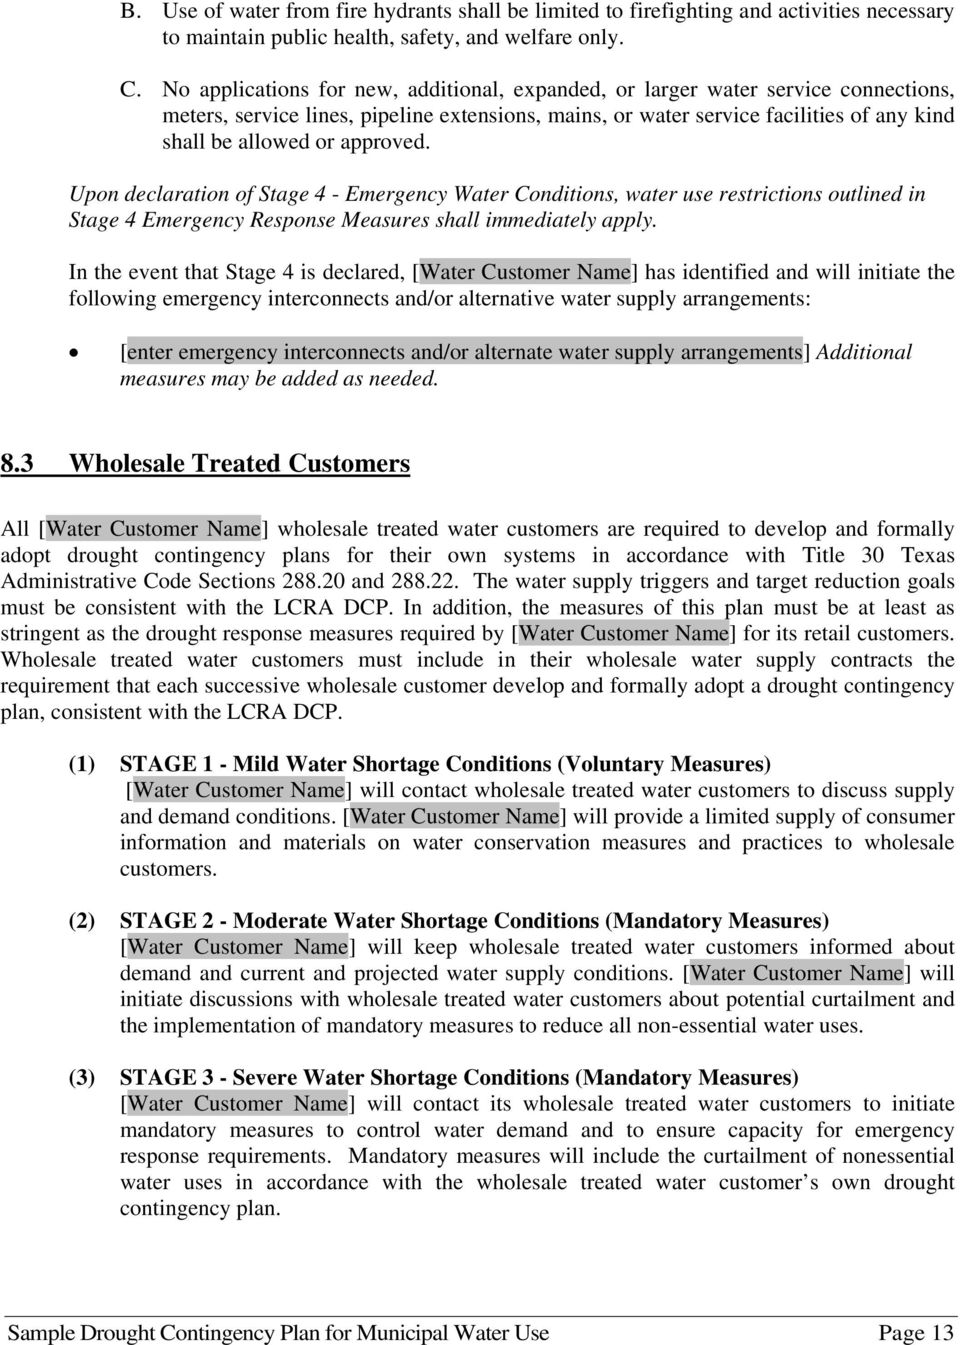 approved. Upon declaration of Stage 4 - Emergency Water Conditions, water use restrictions outlined in Stage 4 Emergency Response Measures shall immediately apply.